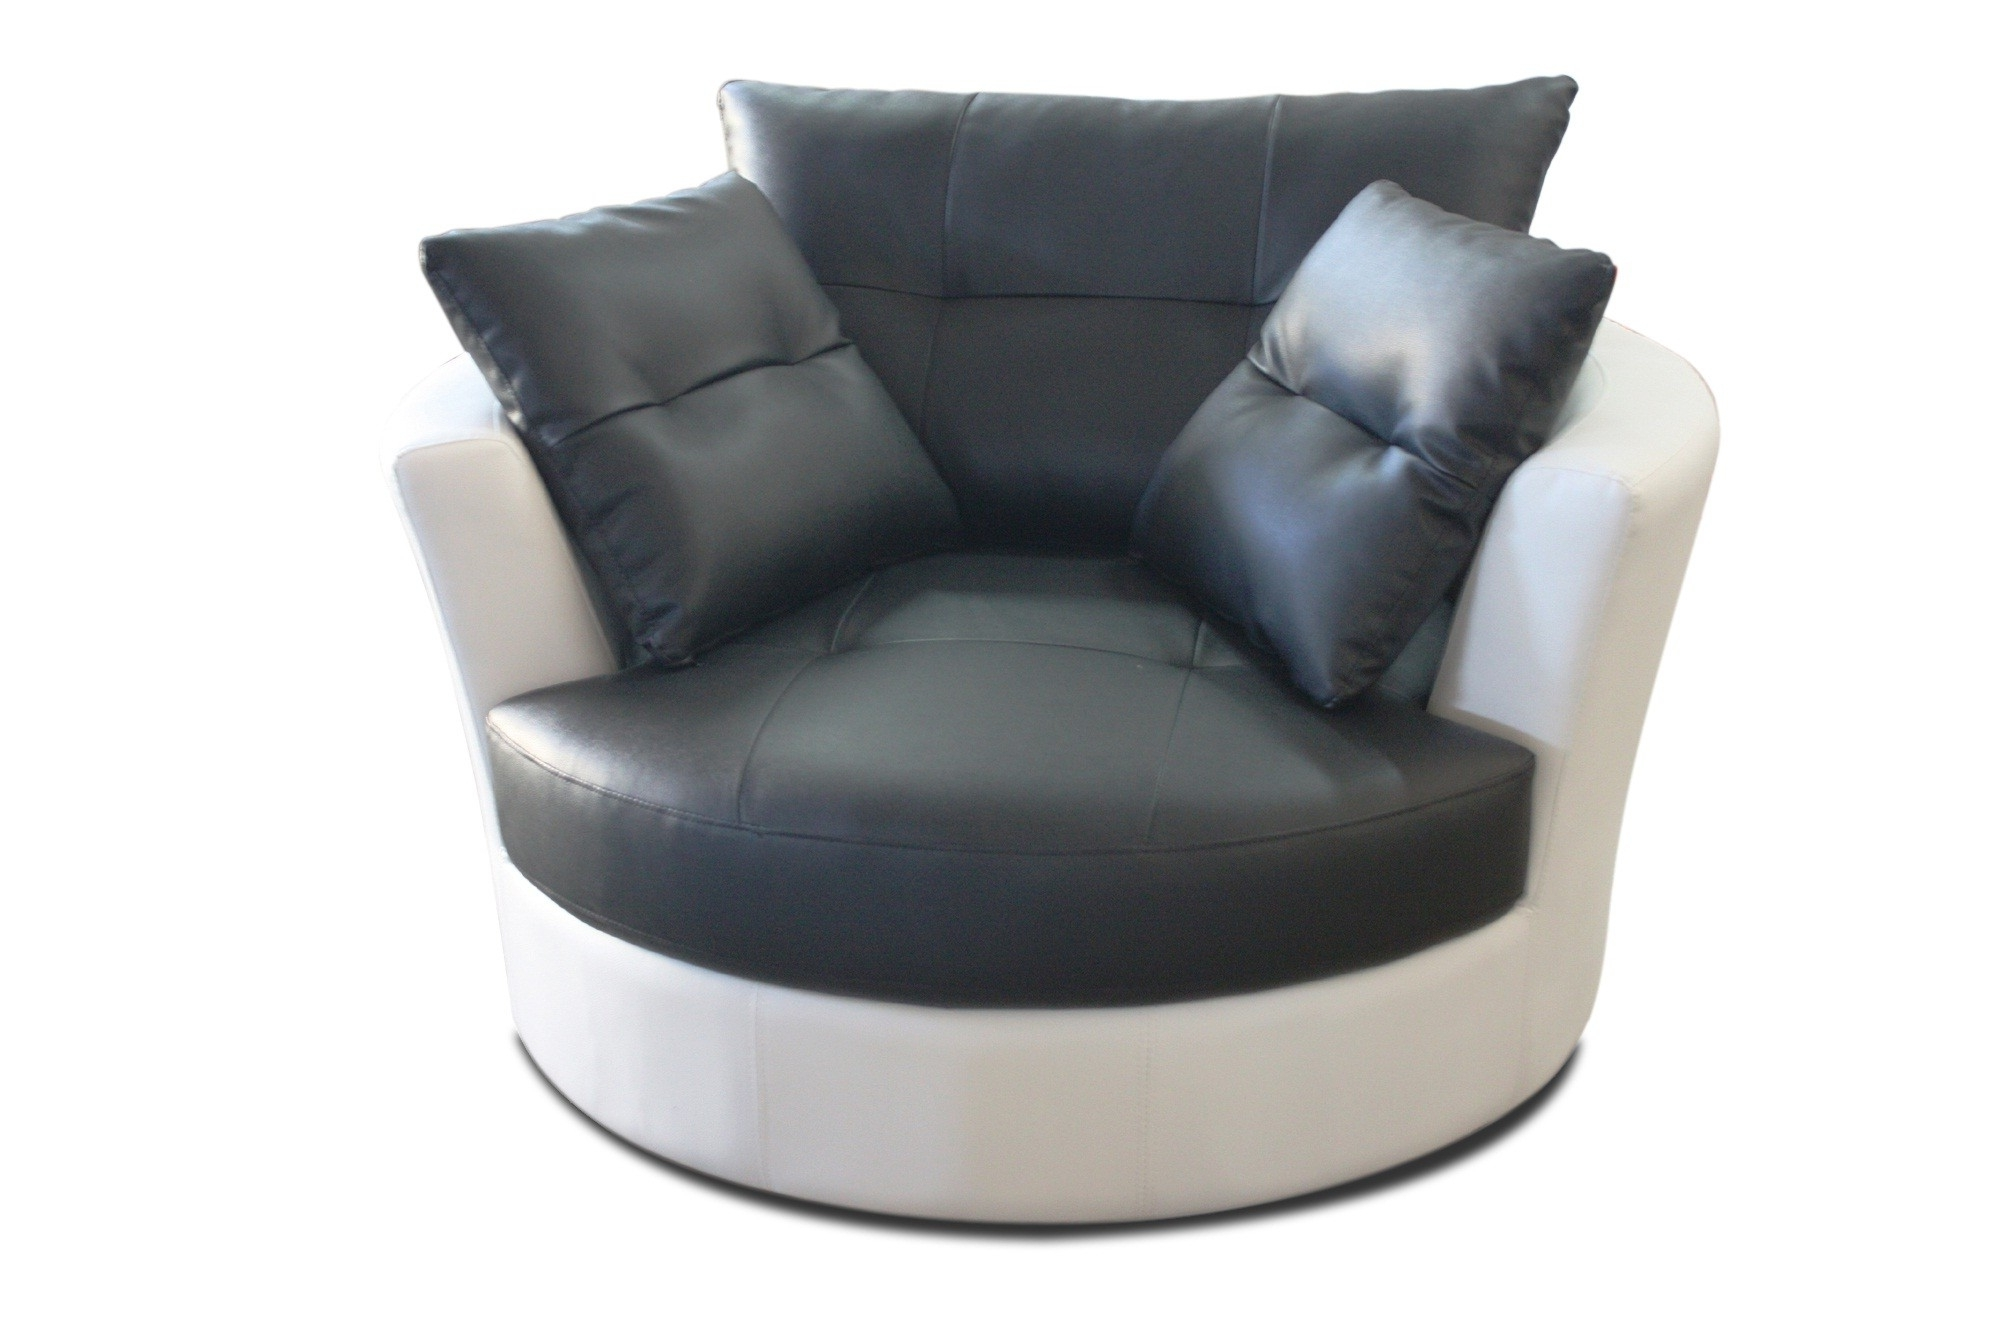 Fresh Swivel Sofa Chair 55 For Sofas And Couches Ideas With Swivel In Well Known Swivel Sofa Chairs (View 5 of 20)